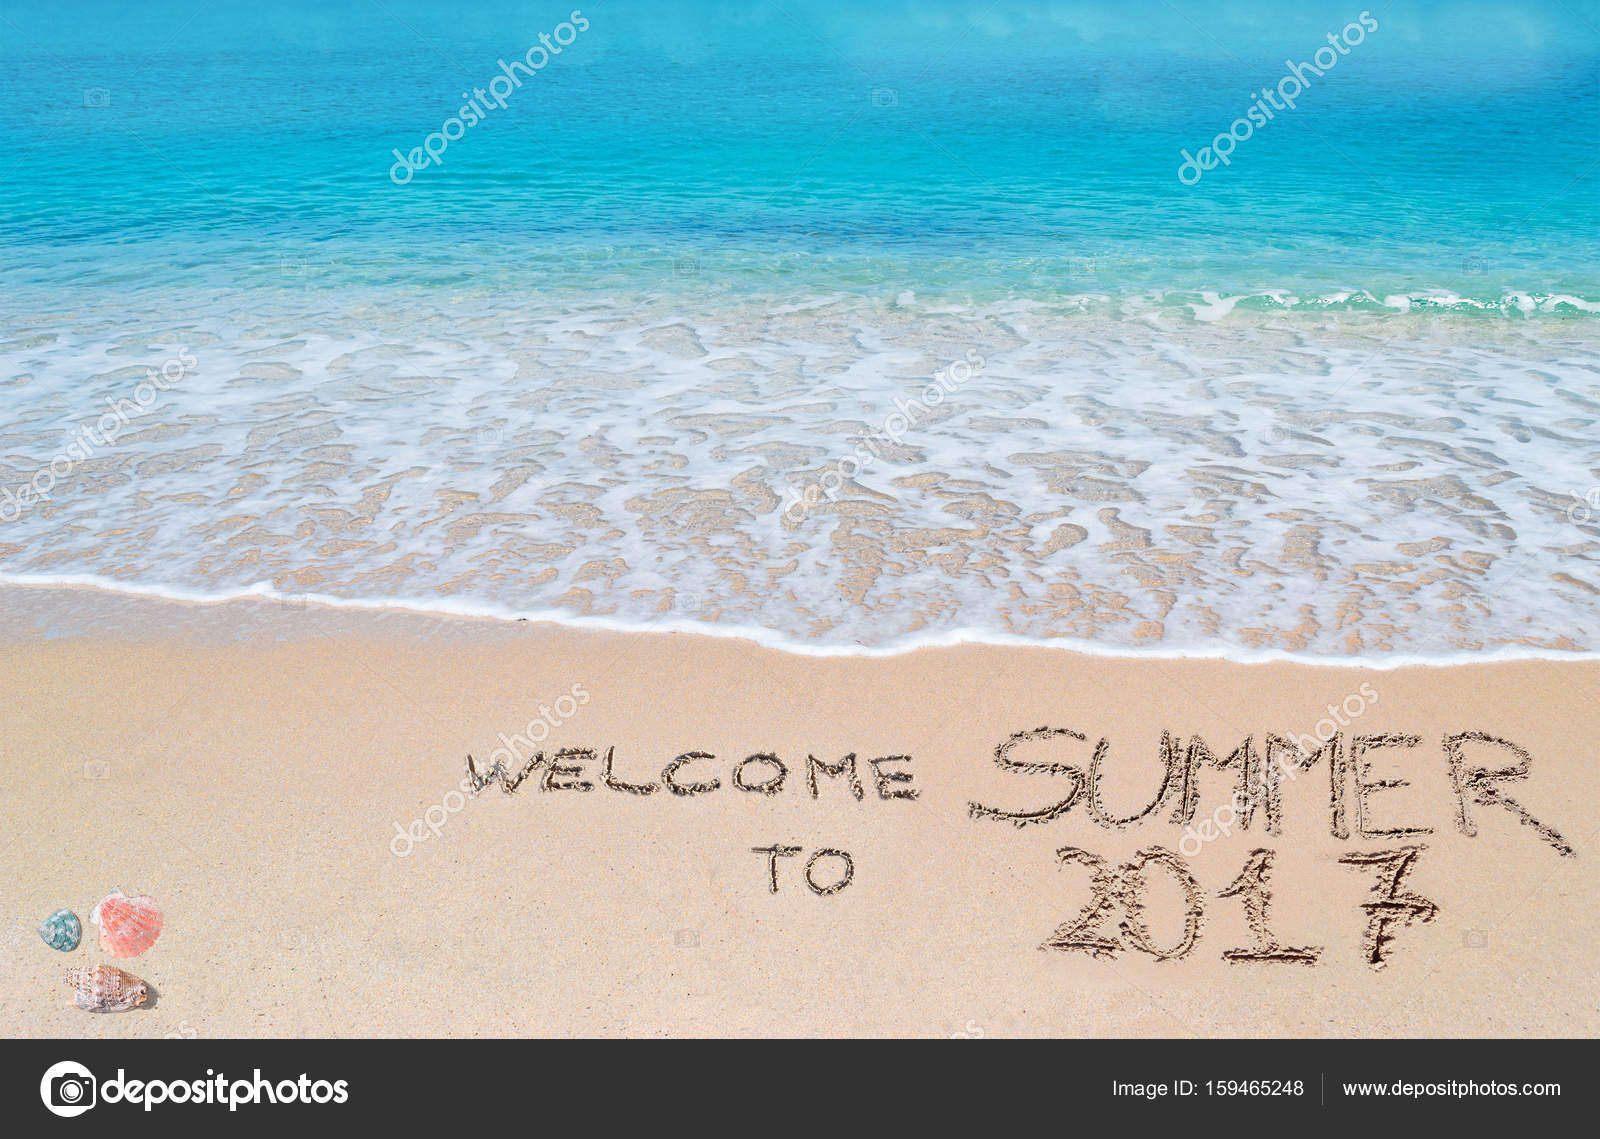 Welcome To Summer 2017 Written On A Tropical Beach U2014 Stock Photo